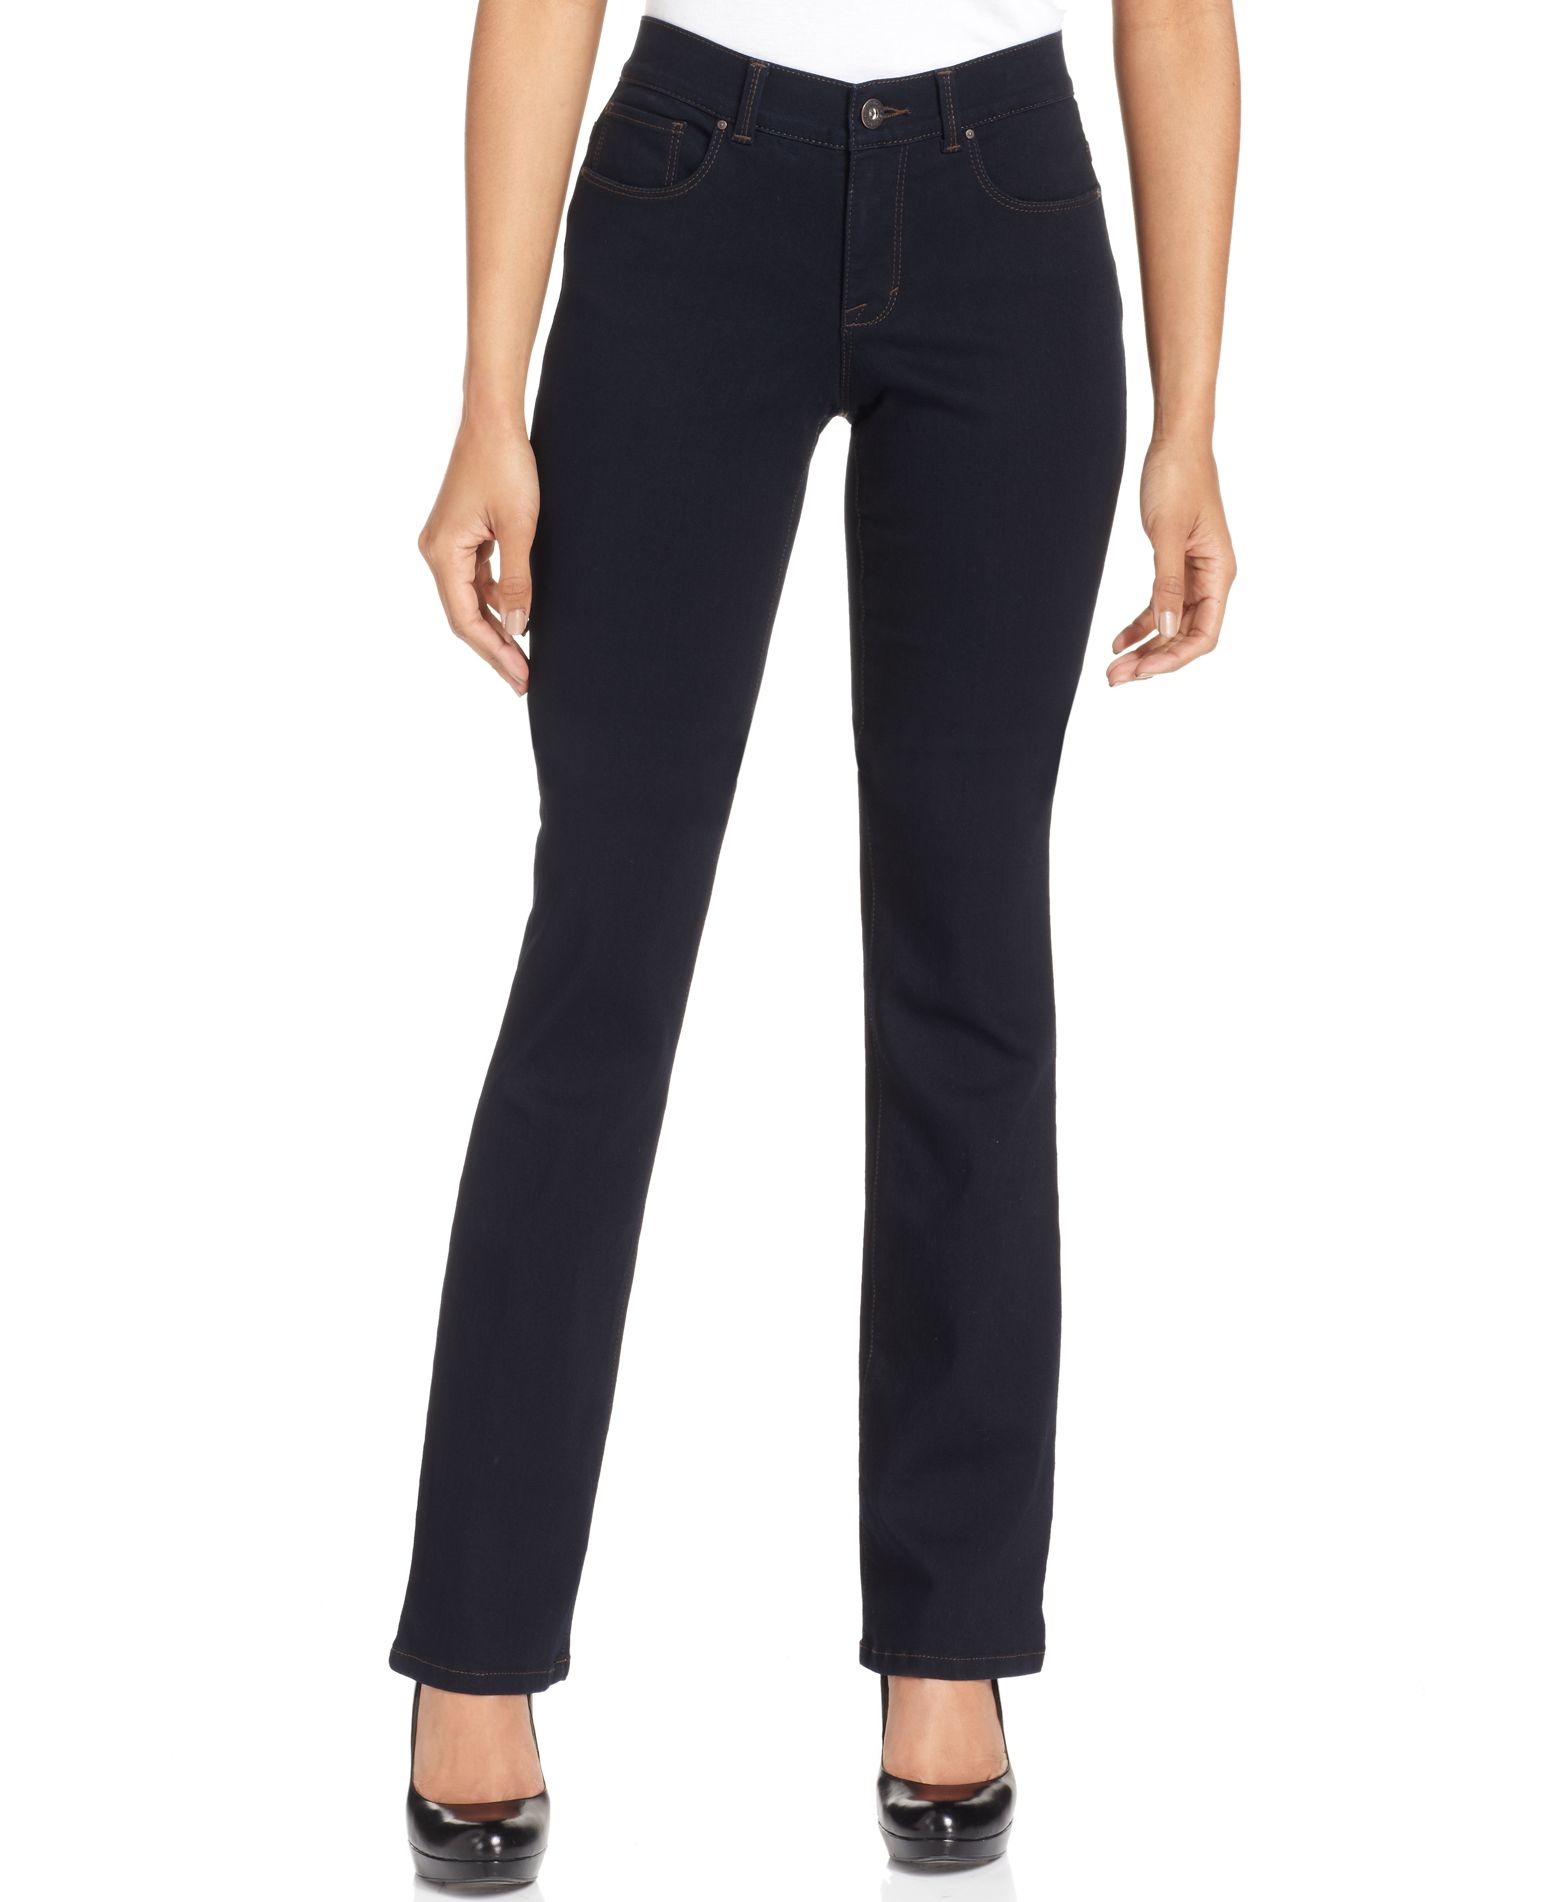 Women's Style & Co. Pants Exclusive to Macy's, Style & Co. is a sophisticated, contemporary line offering a broad selection of closet essentials. The label has a trend led aesthetic with a fashion-forward feel, perfect for creating individual style for day or night.